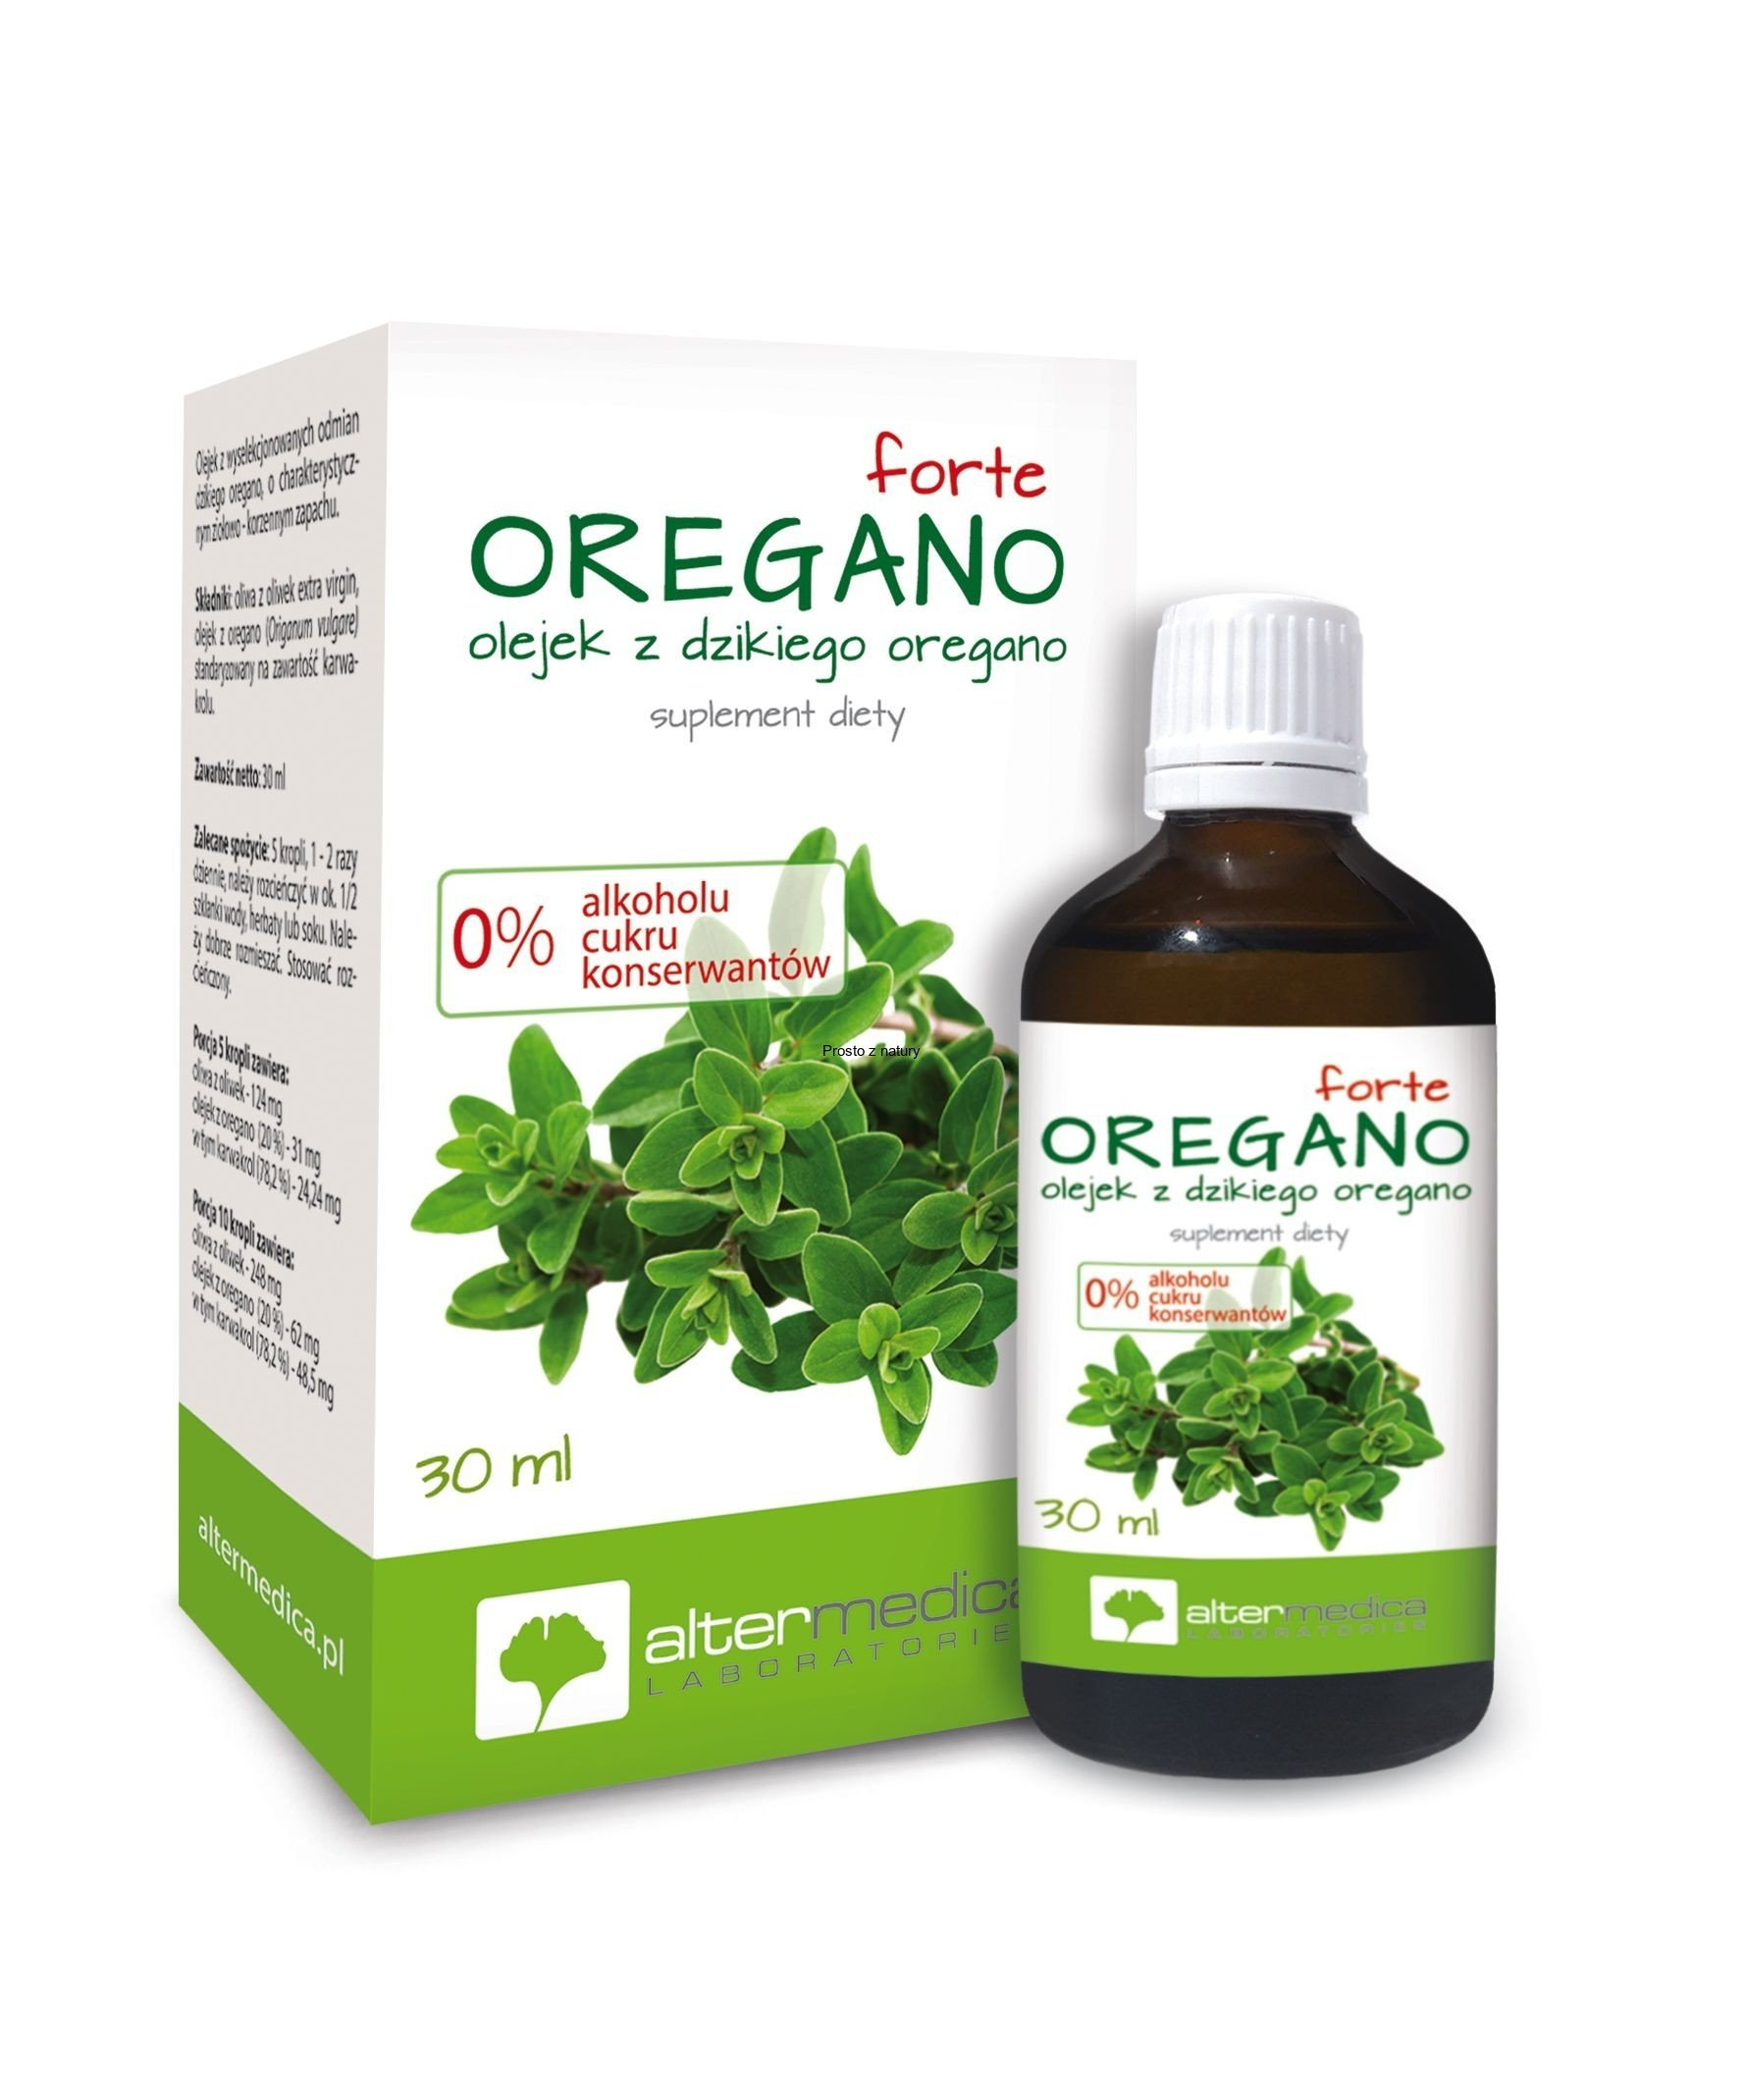 Olej Oregano Forte 30ml ALTER MEDICA